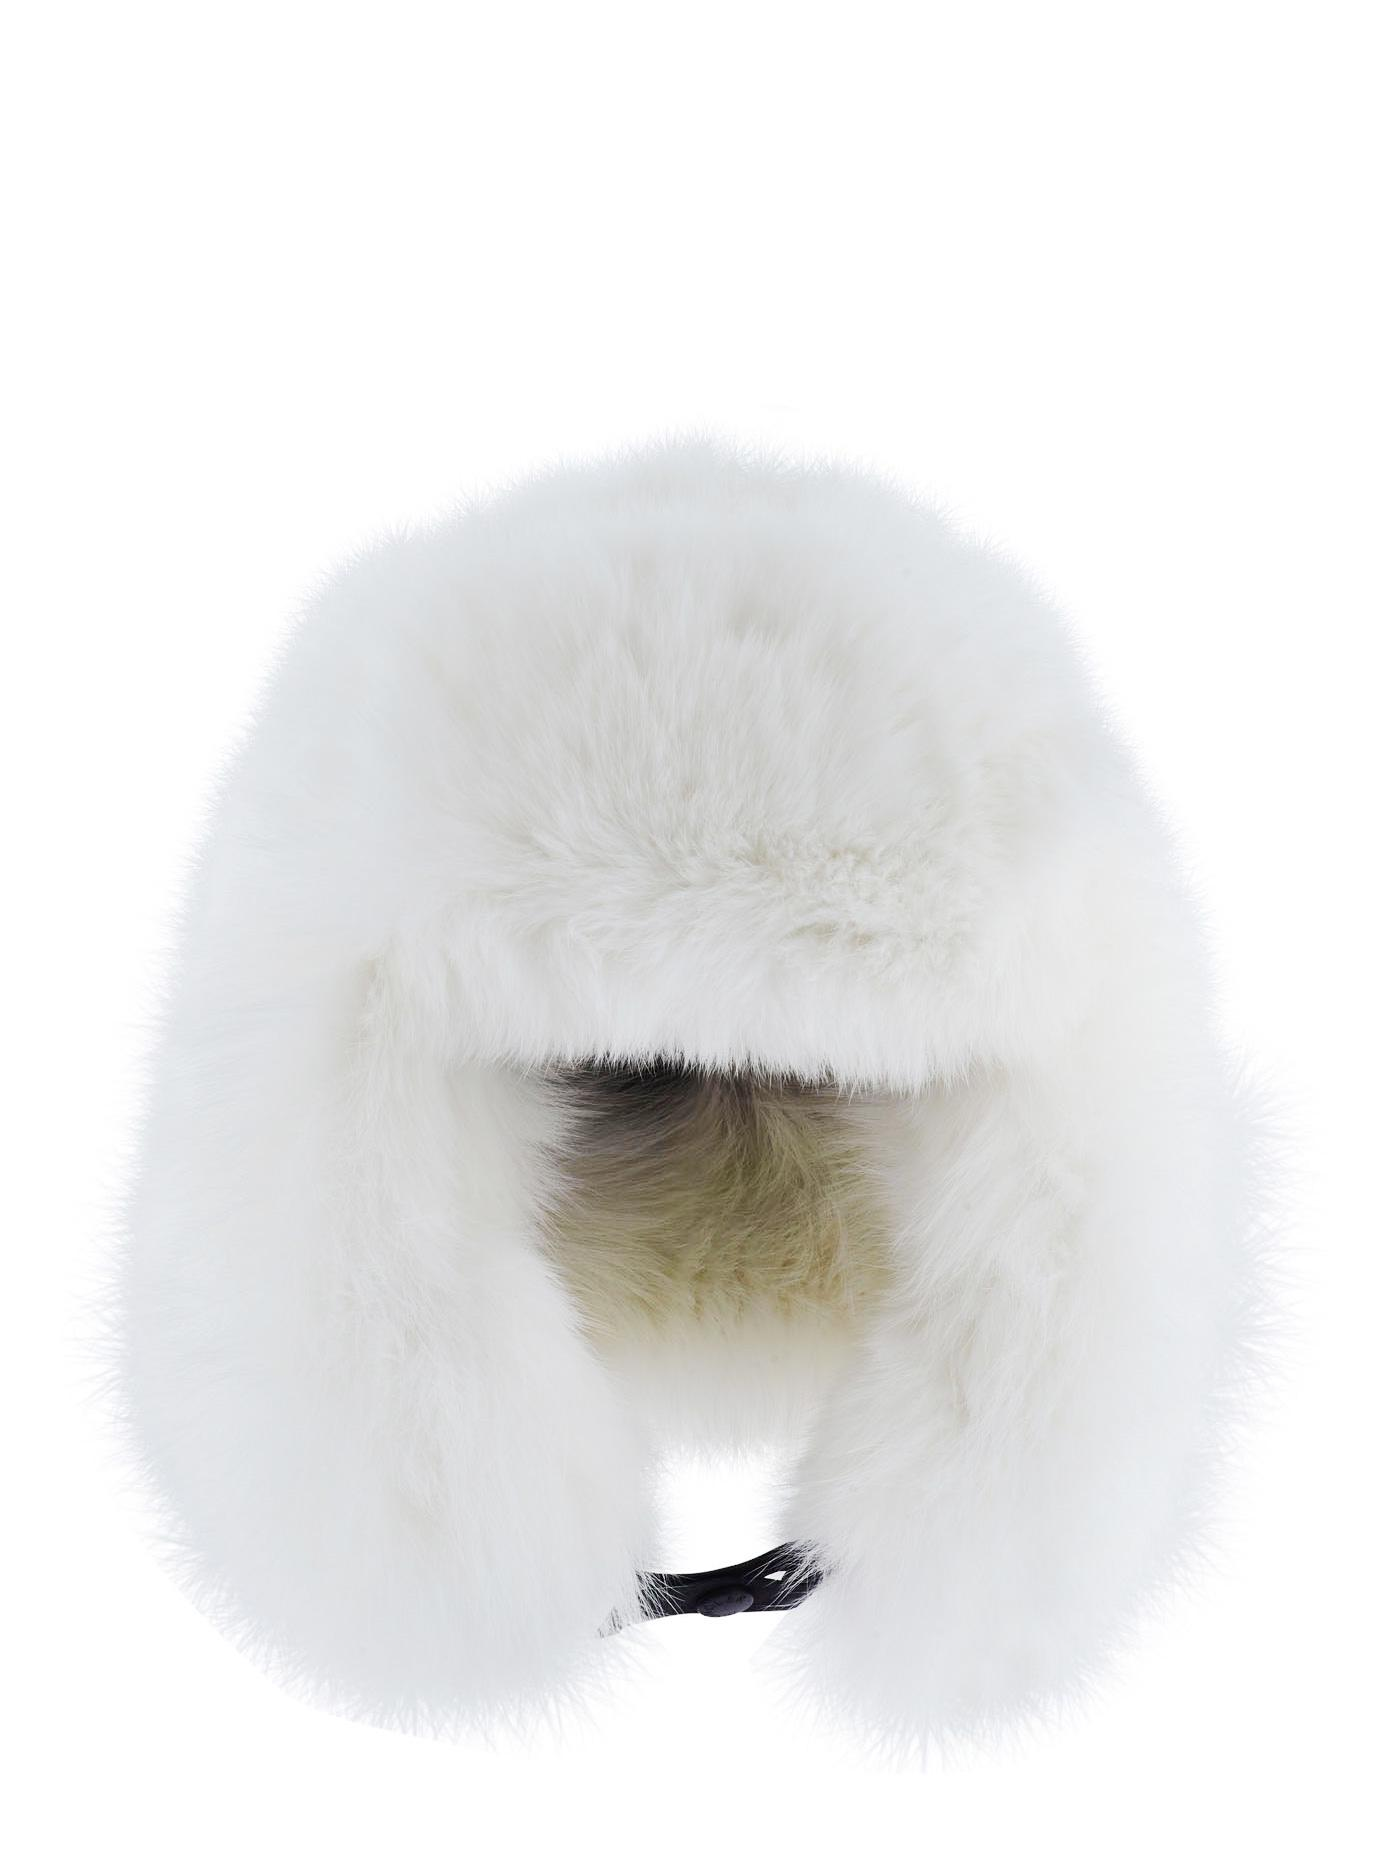 Lyst - Moncler Grenoble Fur Hat in White 93bea1c7eea